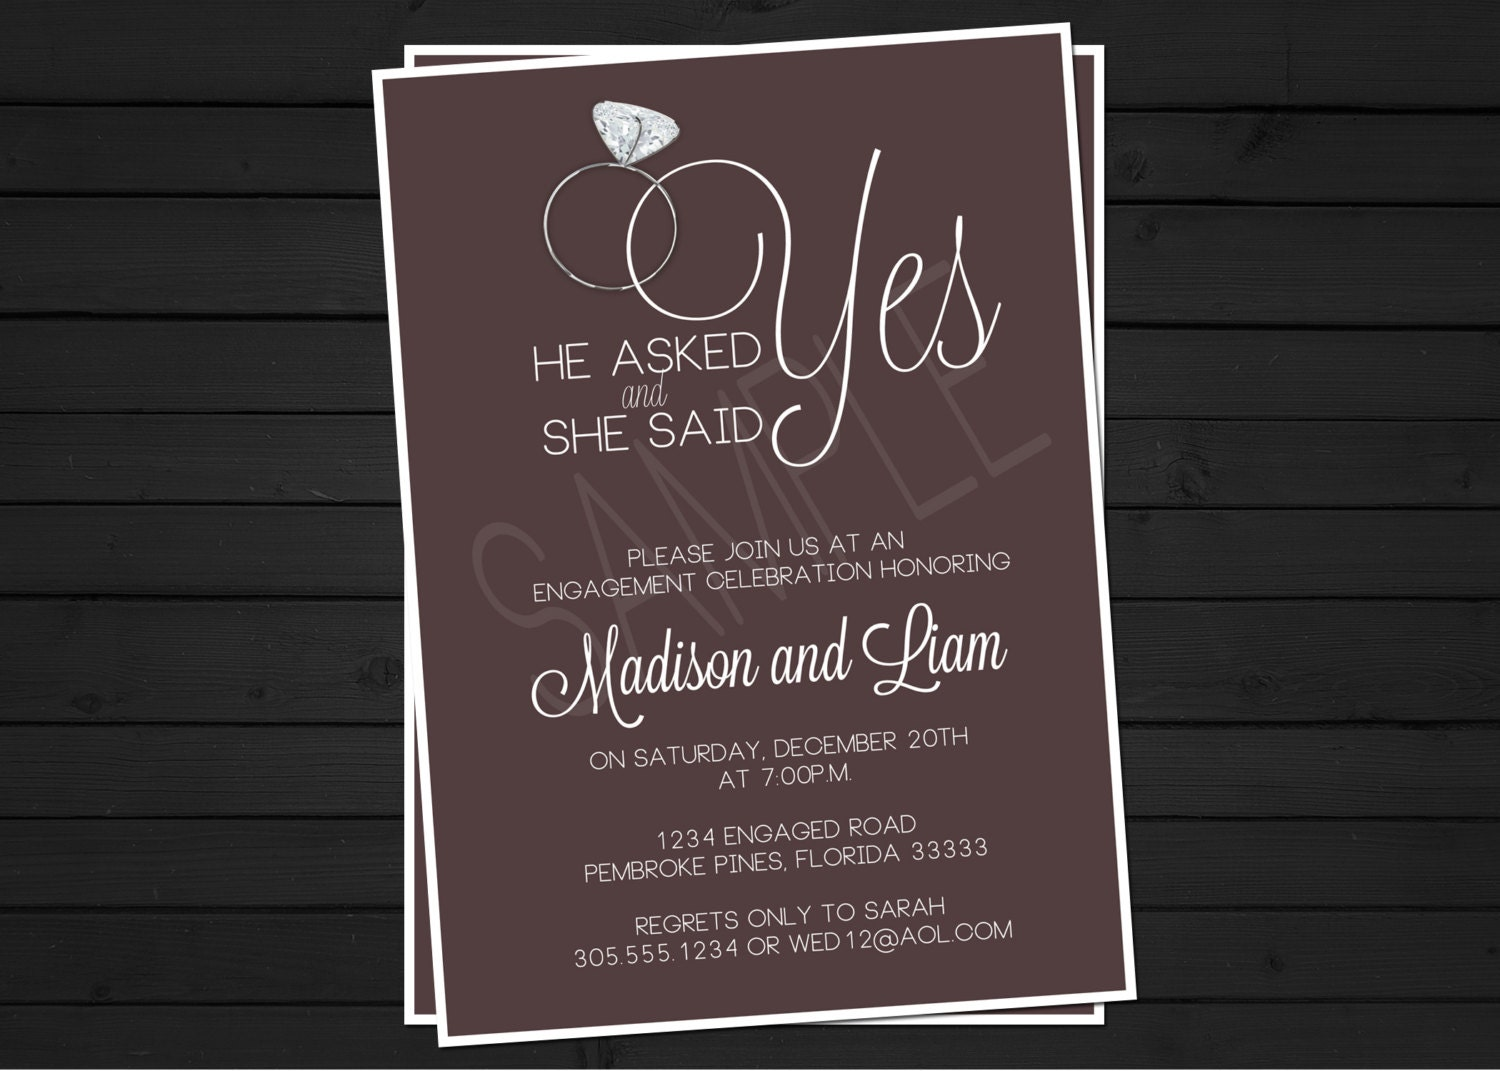 Engagement party invitation digital file by shestutucutebtq for Online engagement party invitations